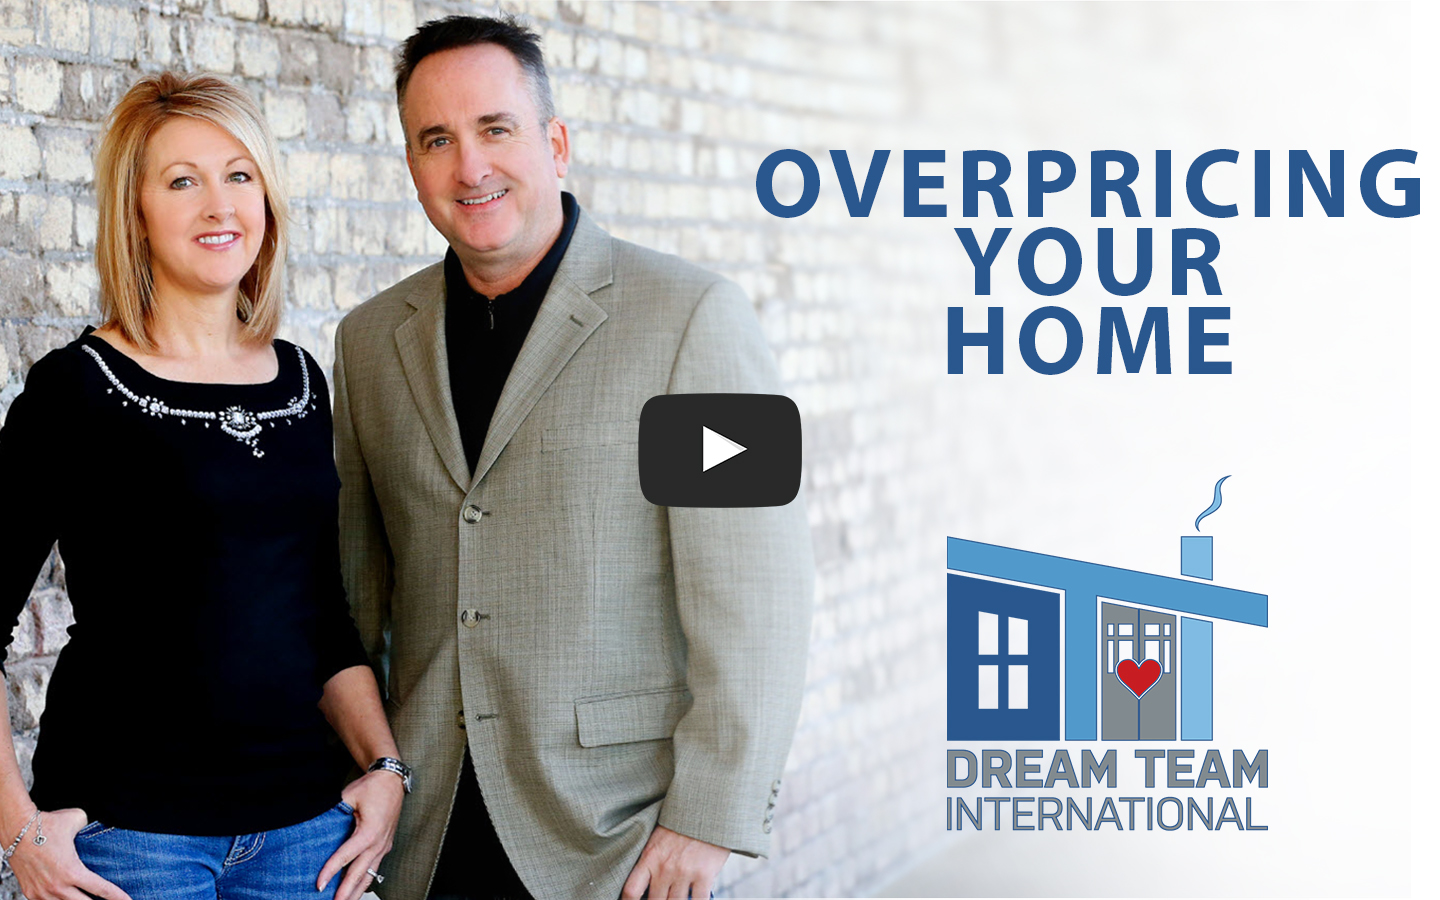 What Happens When You Overprice Your Home